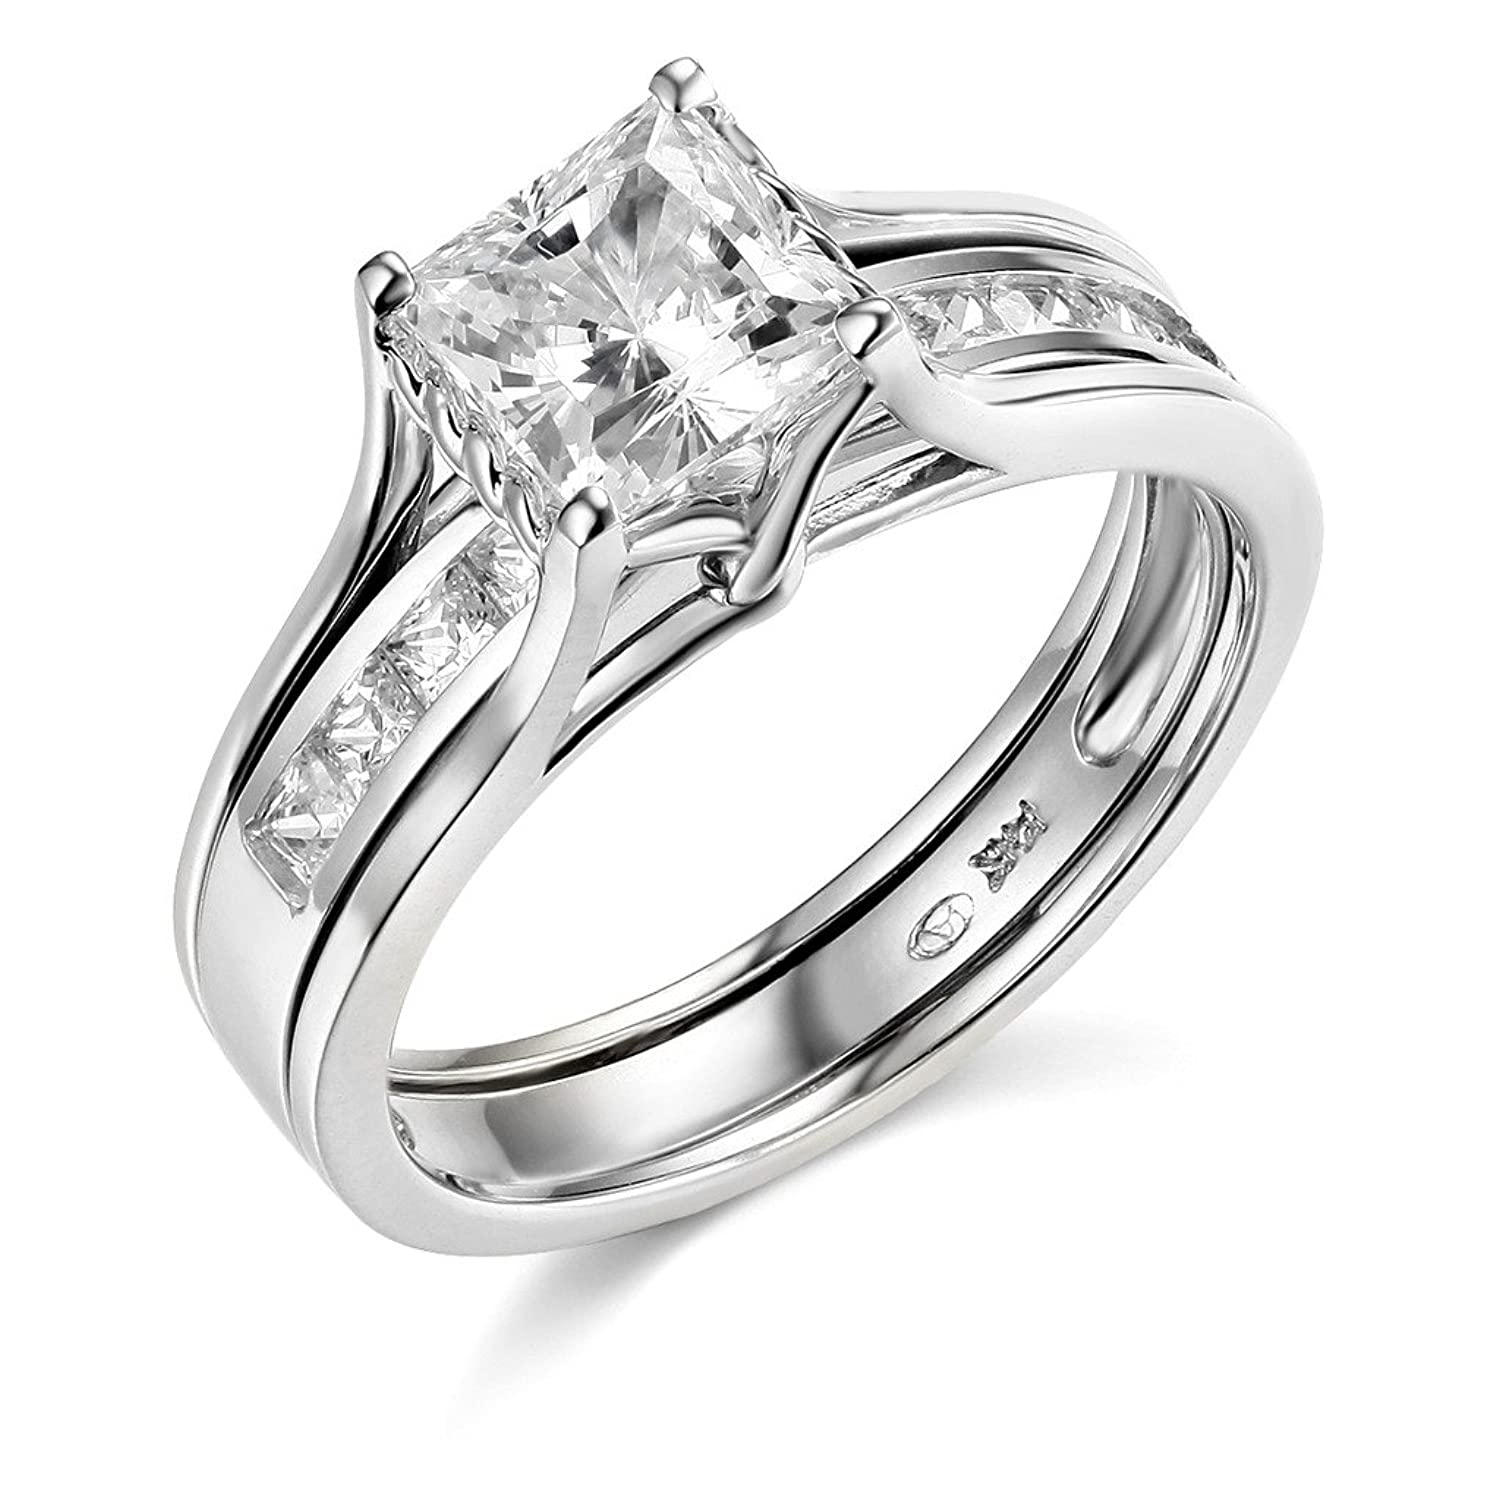 kurio silver engagement jewellery rings product toko ring thinsilverbandsolitairering band solitaire information thin